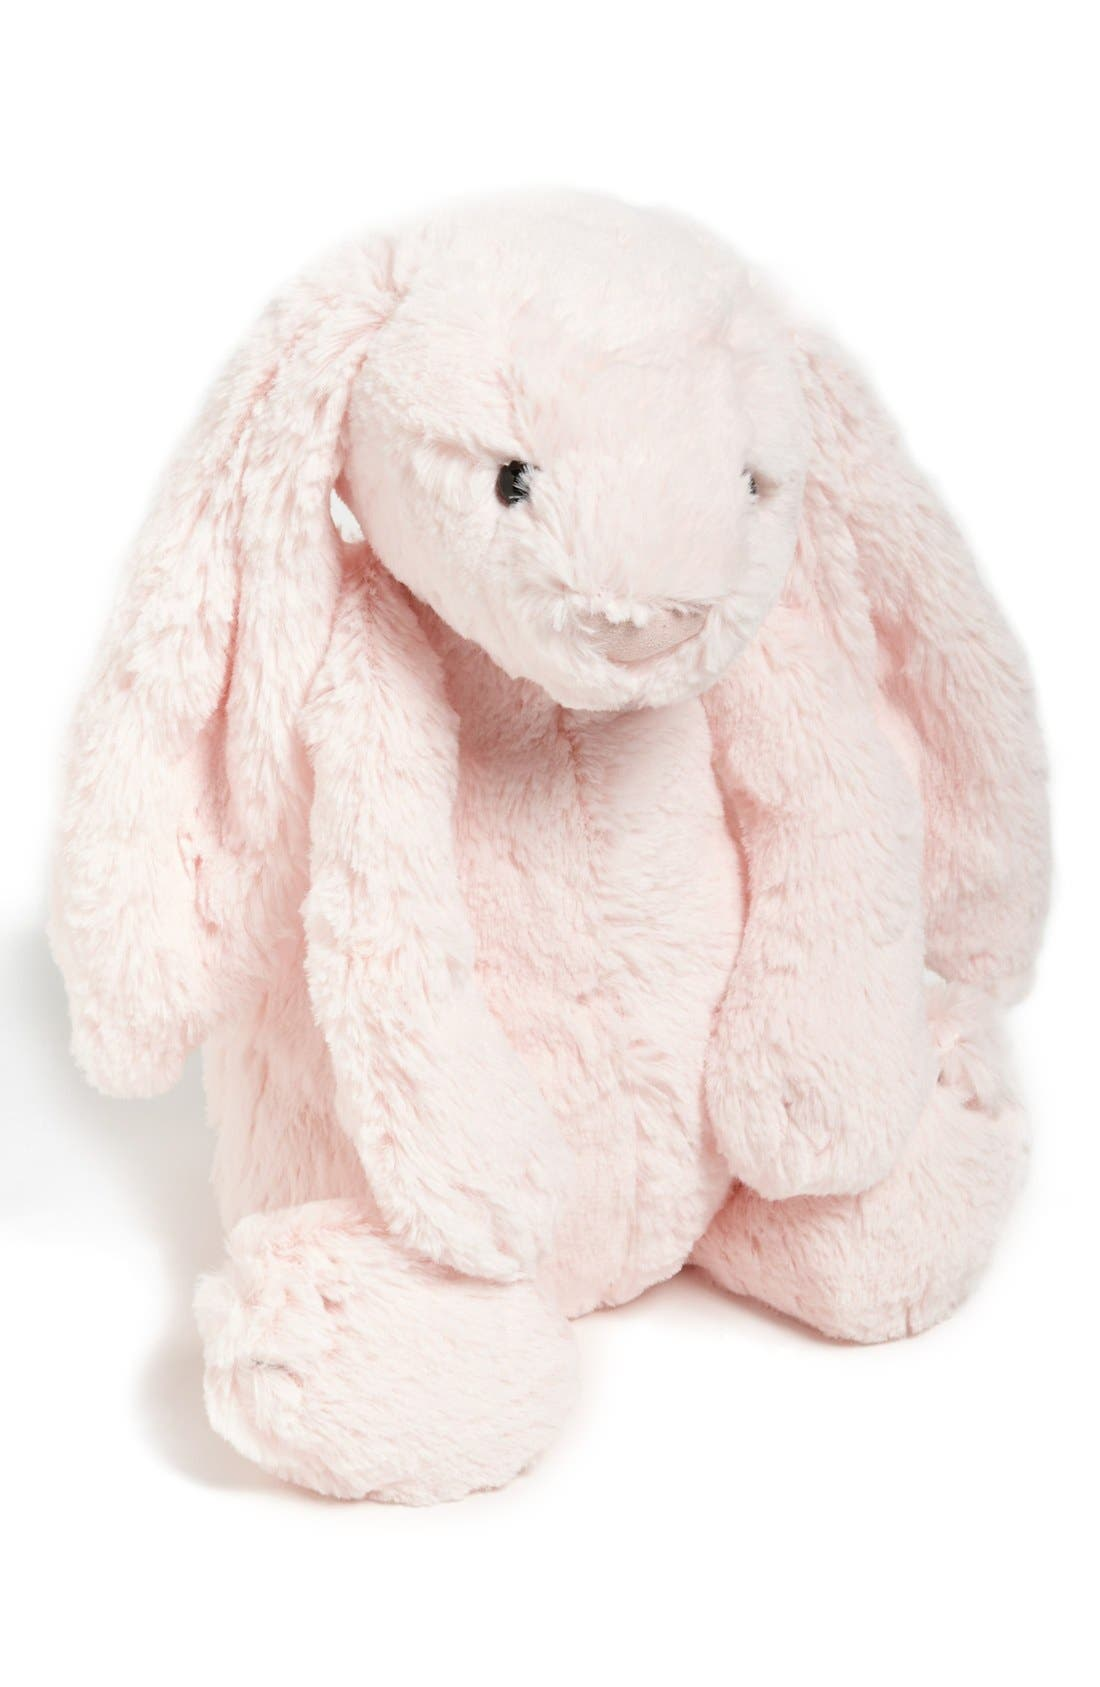 Alternate Image 1 Selected - Jellycat 'Bashful Bunny' Stuffed Animal